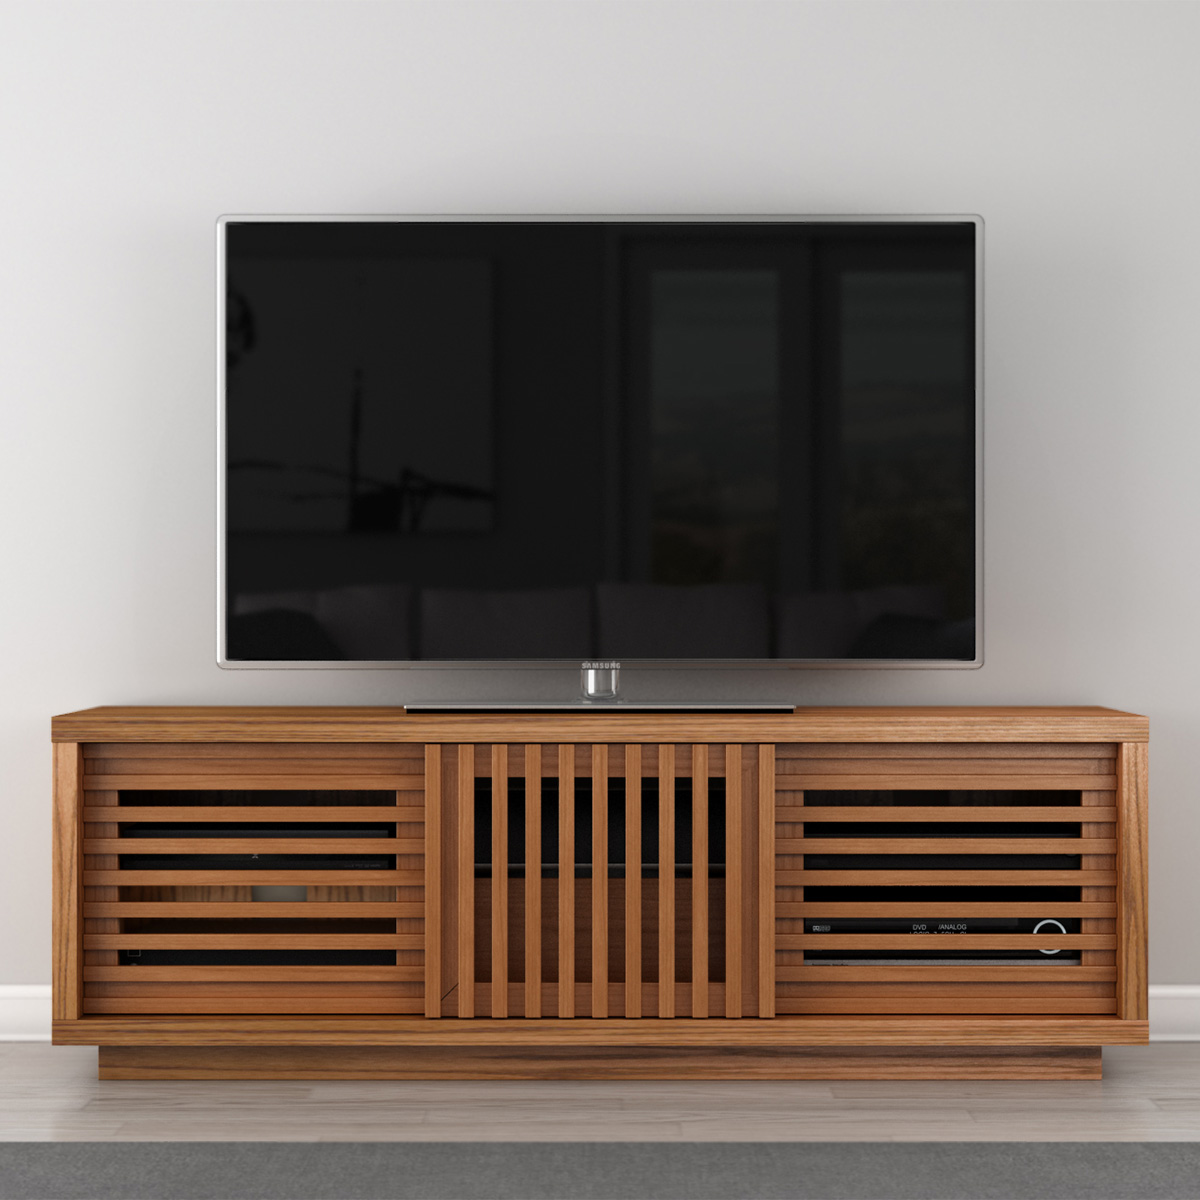 Furnitech Ft64ws Ft64ws 64 Quot Contemporary Rustic Tv Stand